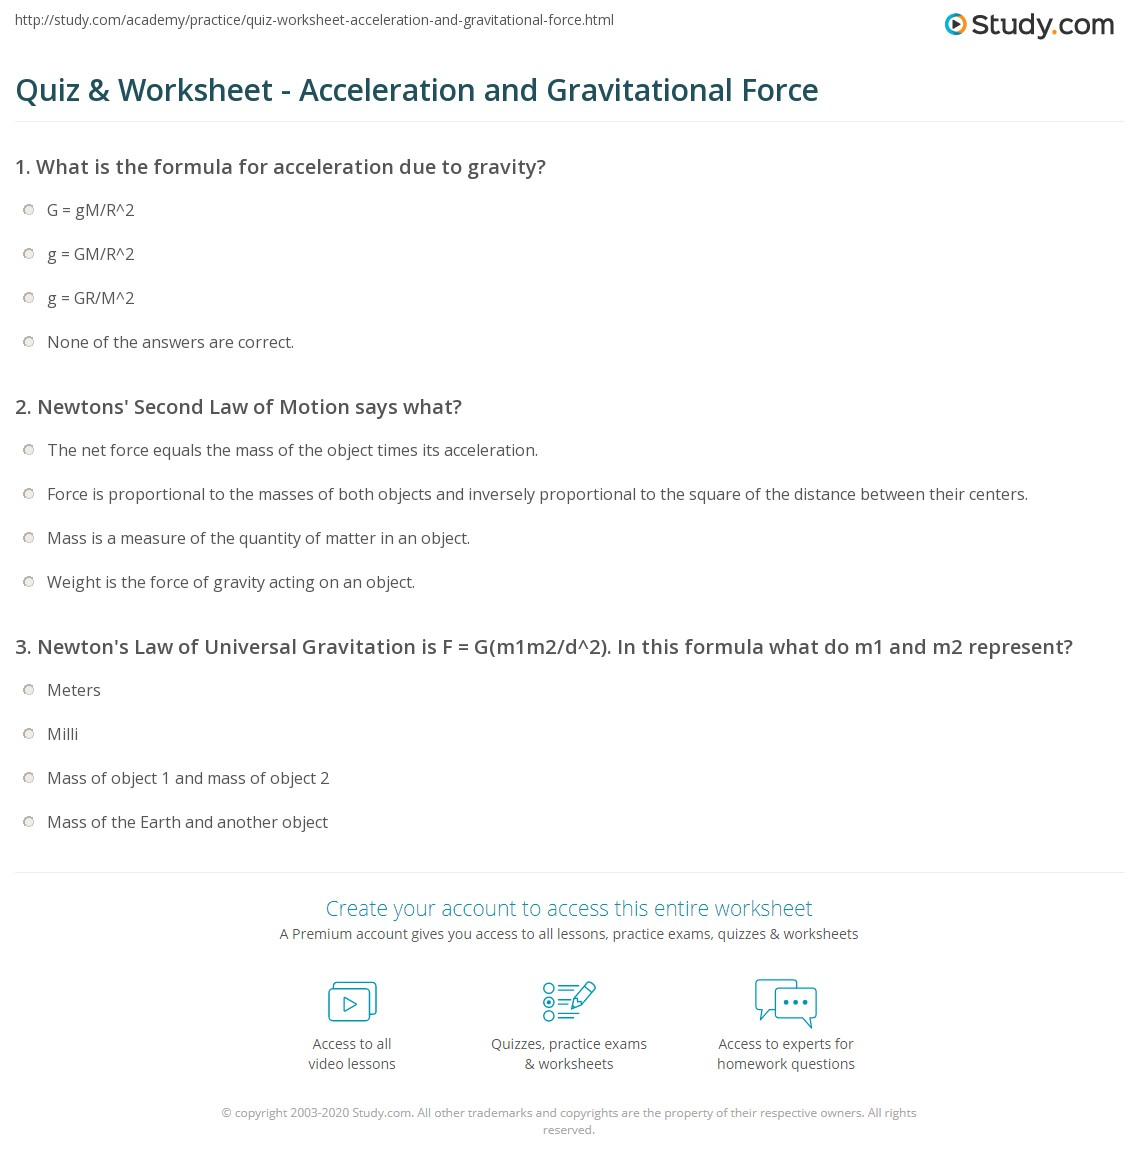 Worksheets Calculating Acceleration Worksheet quiz worksheet acceleration and gravitational force study com print calculating due to gravity formula concept worksheet